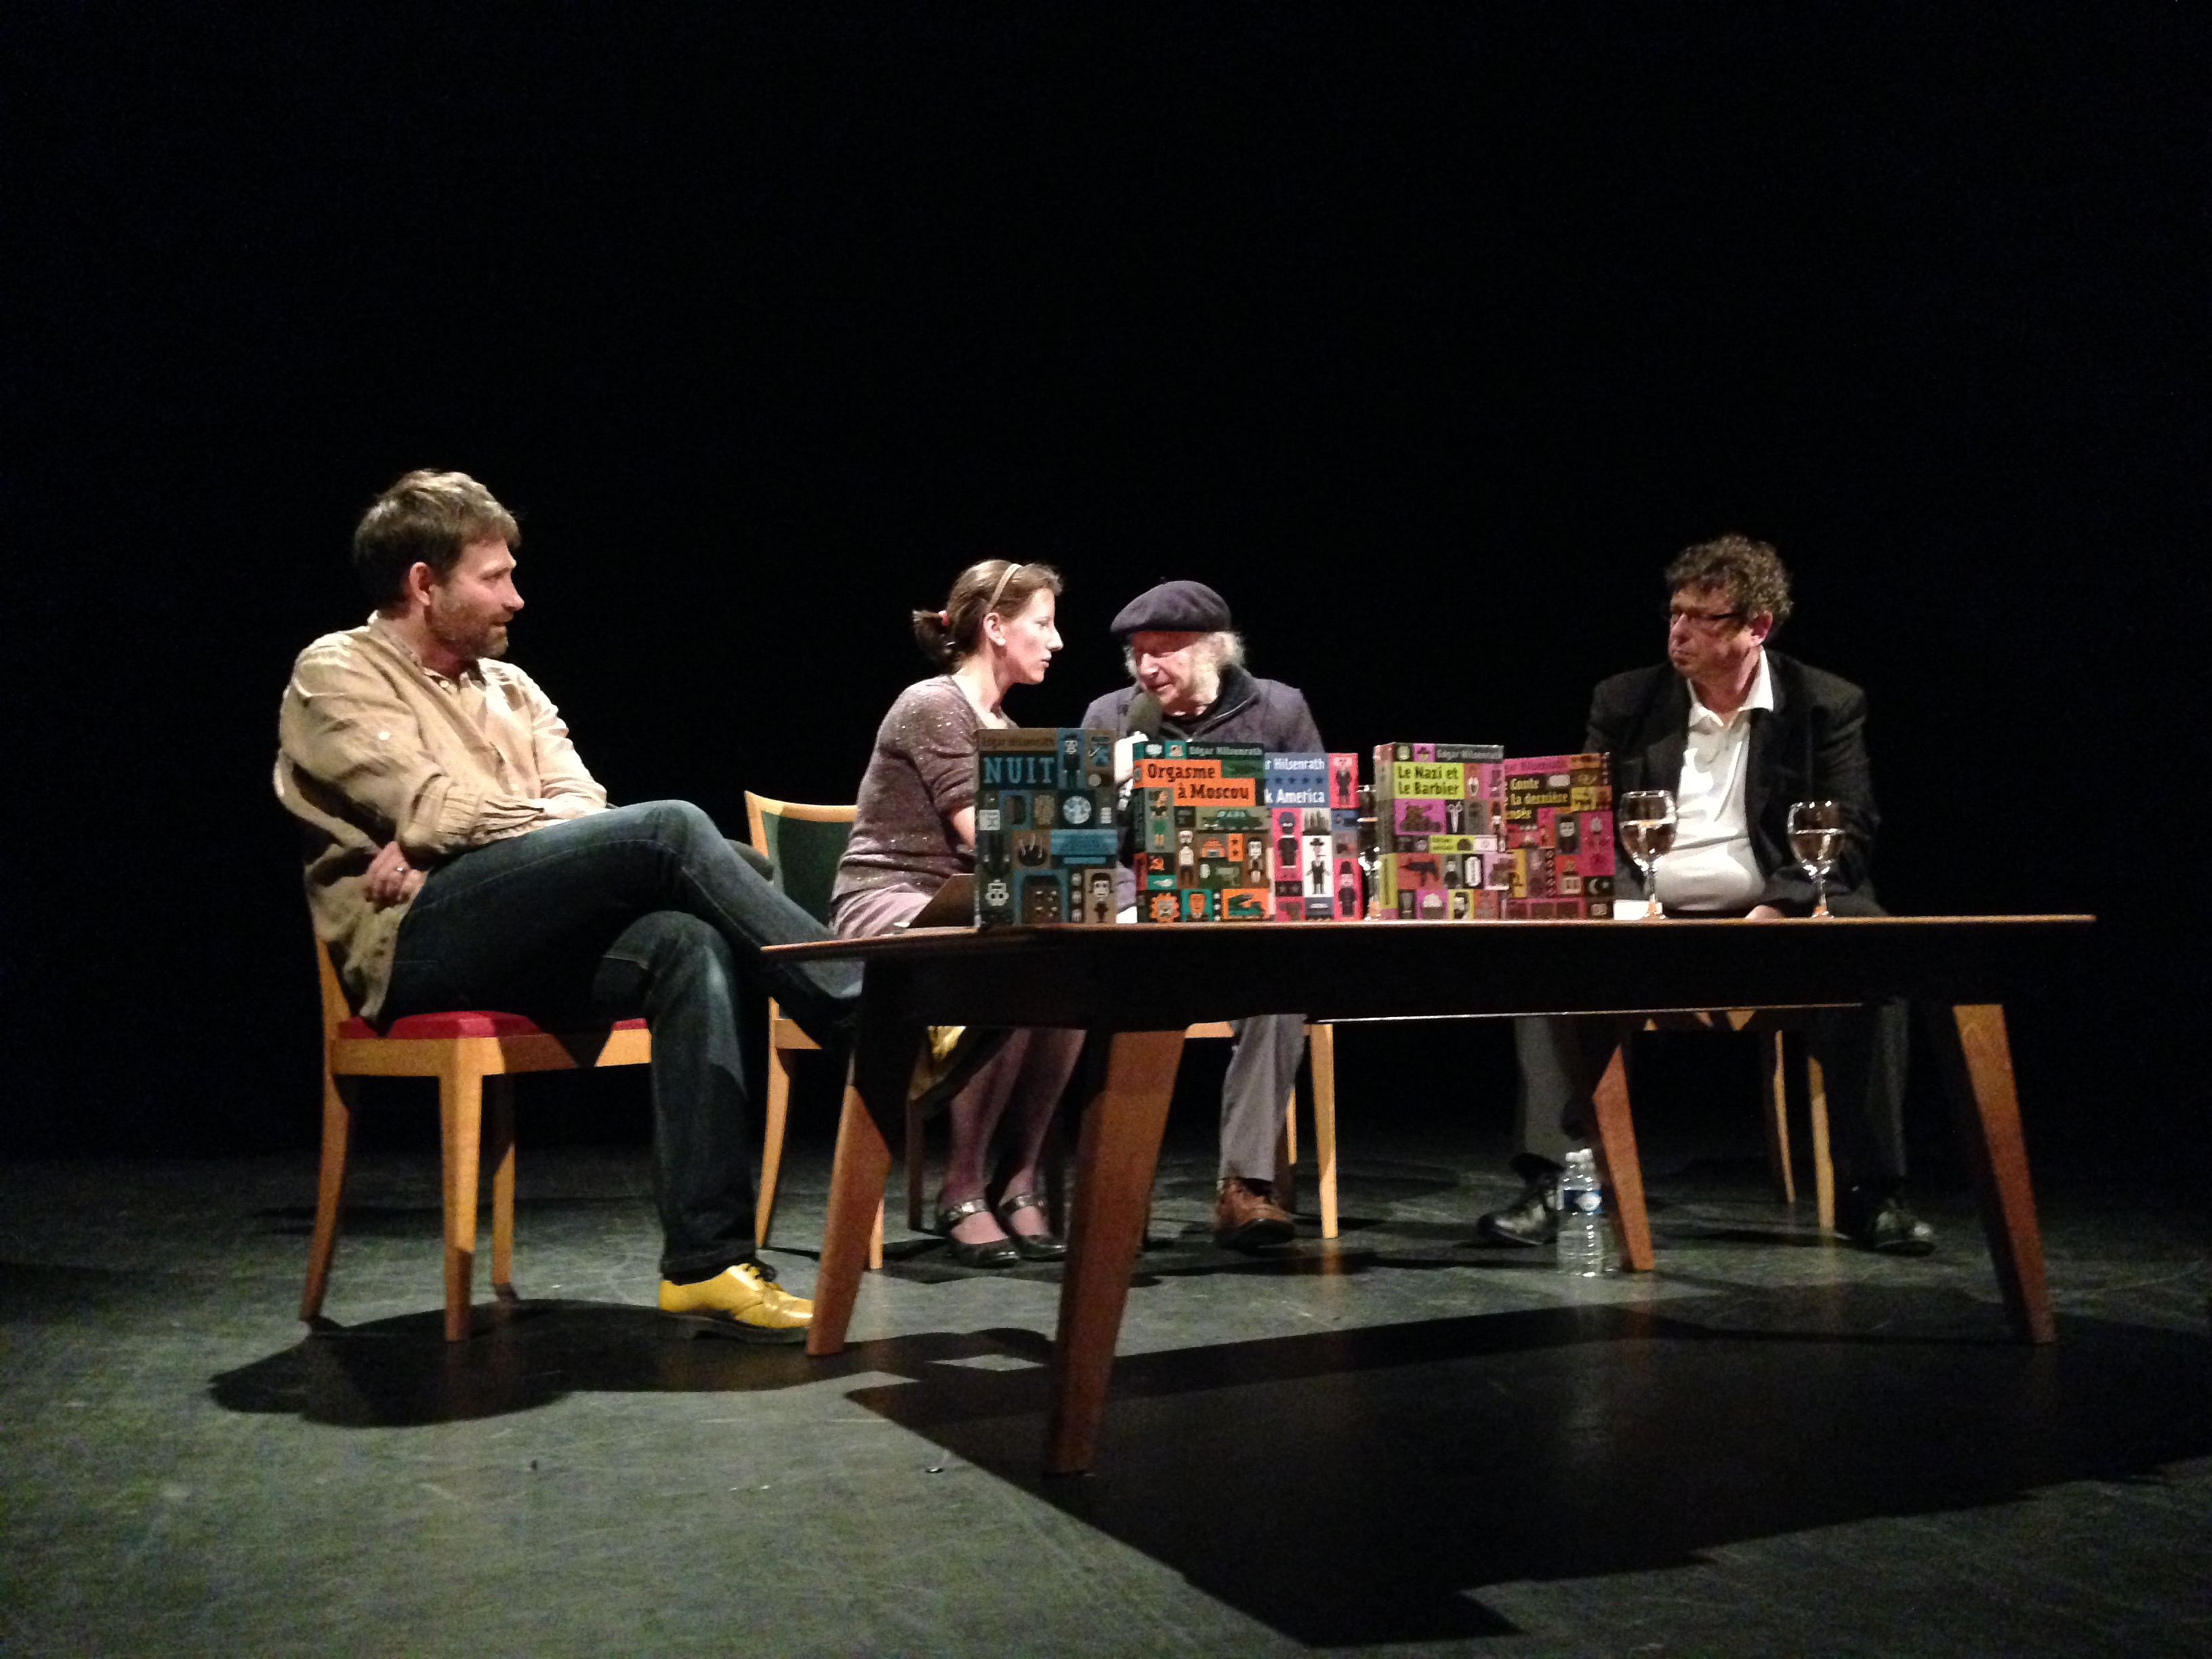 """Edgar Hilsenrath with his French publisher Frédéric Martin, the translator Anne Thomas, and the director of the Goethe Institute Paris Joachim Umlauf in the Maison de la Poésie in Paris at a discussion about the """"The Story of the Last Thought"""", April 2015."""